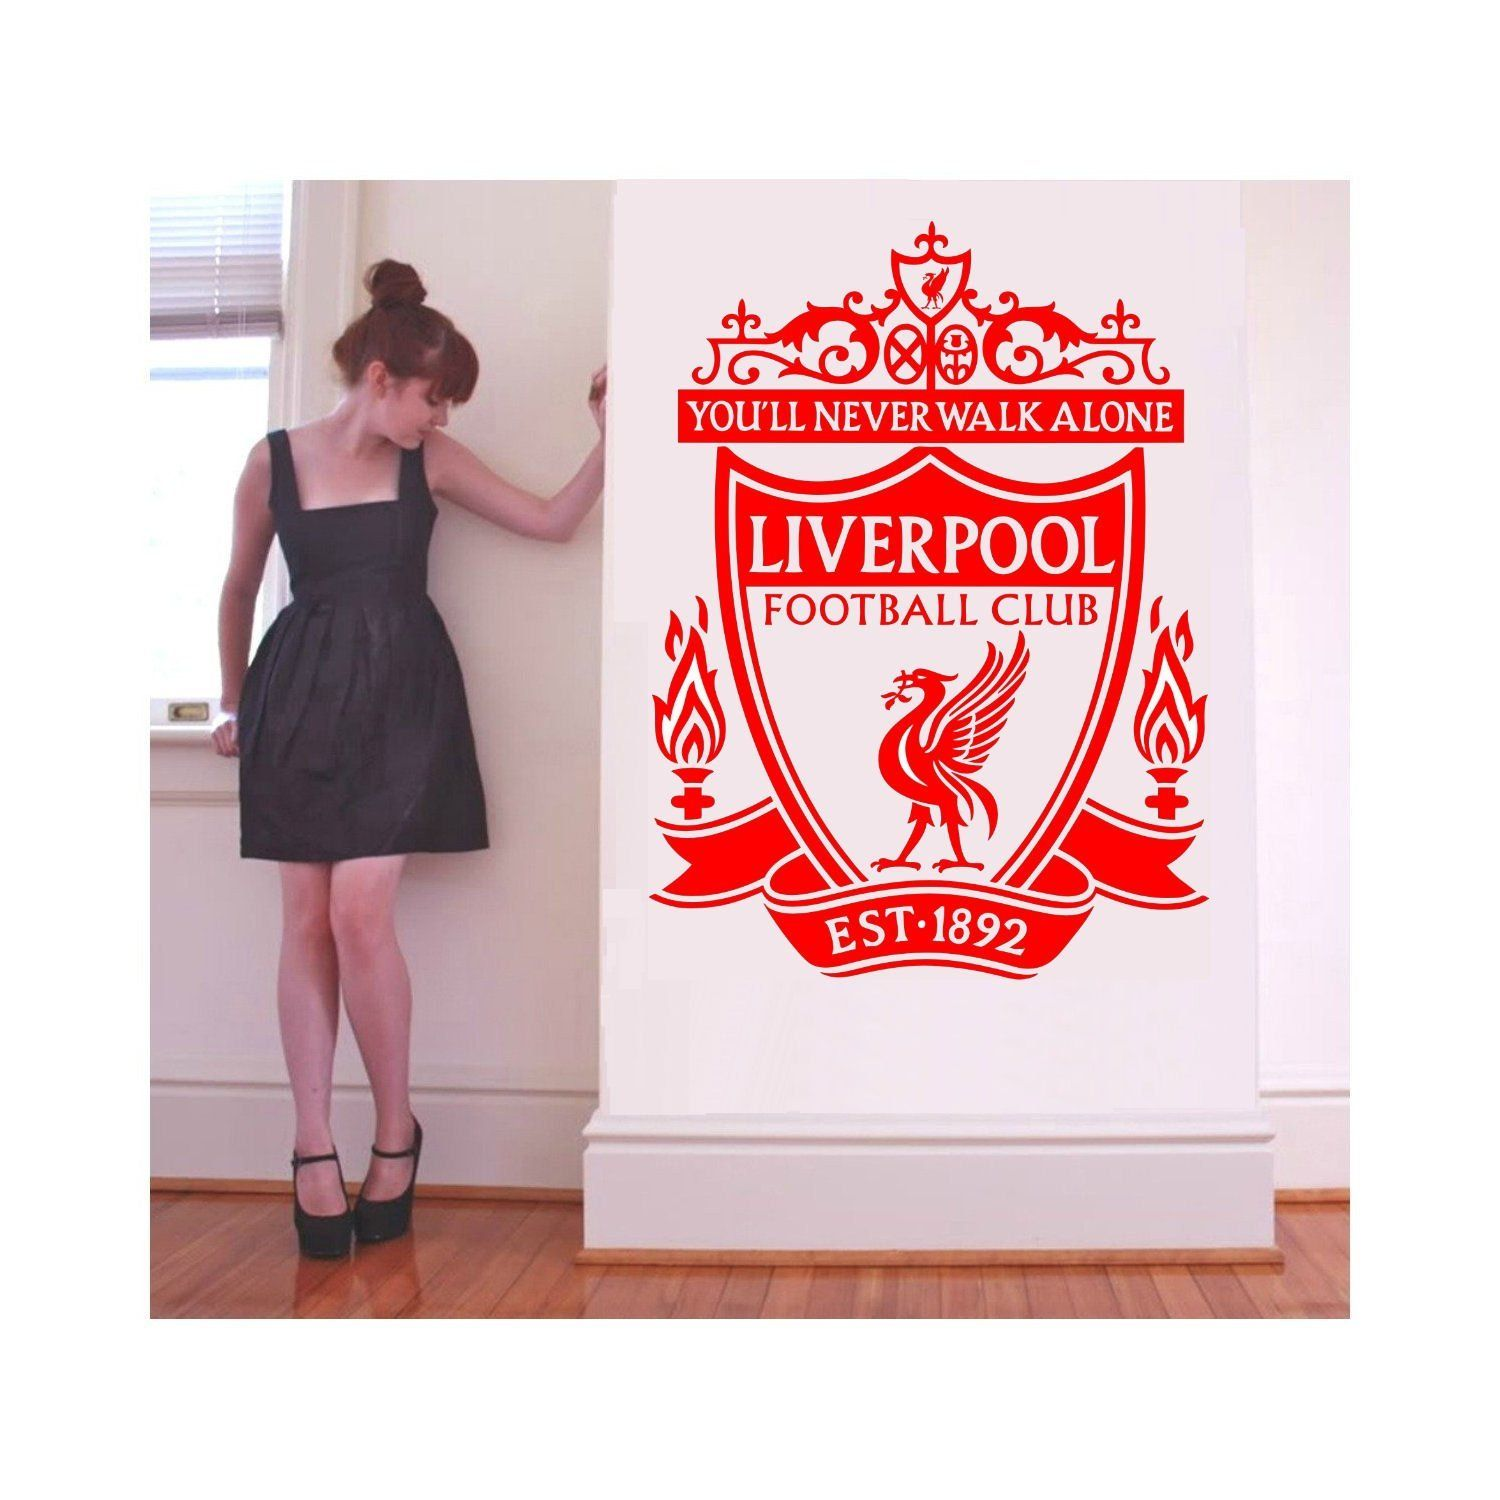 Liverpool fc wall decal from amazon http www amazon co